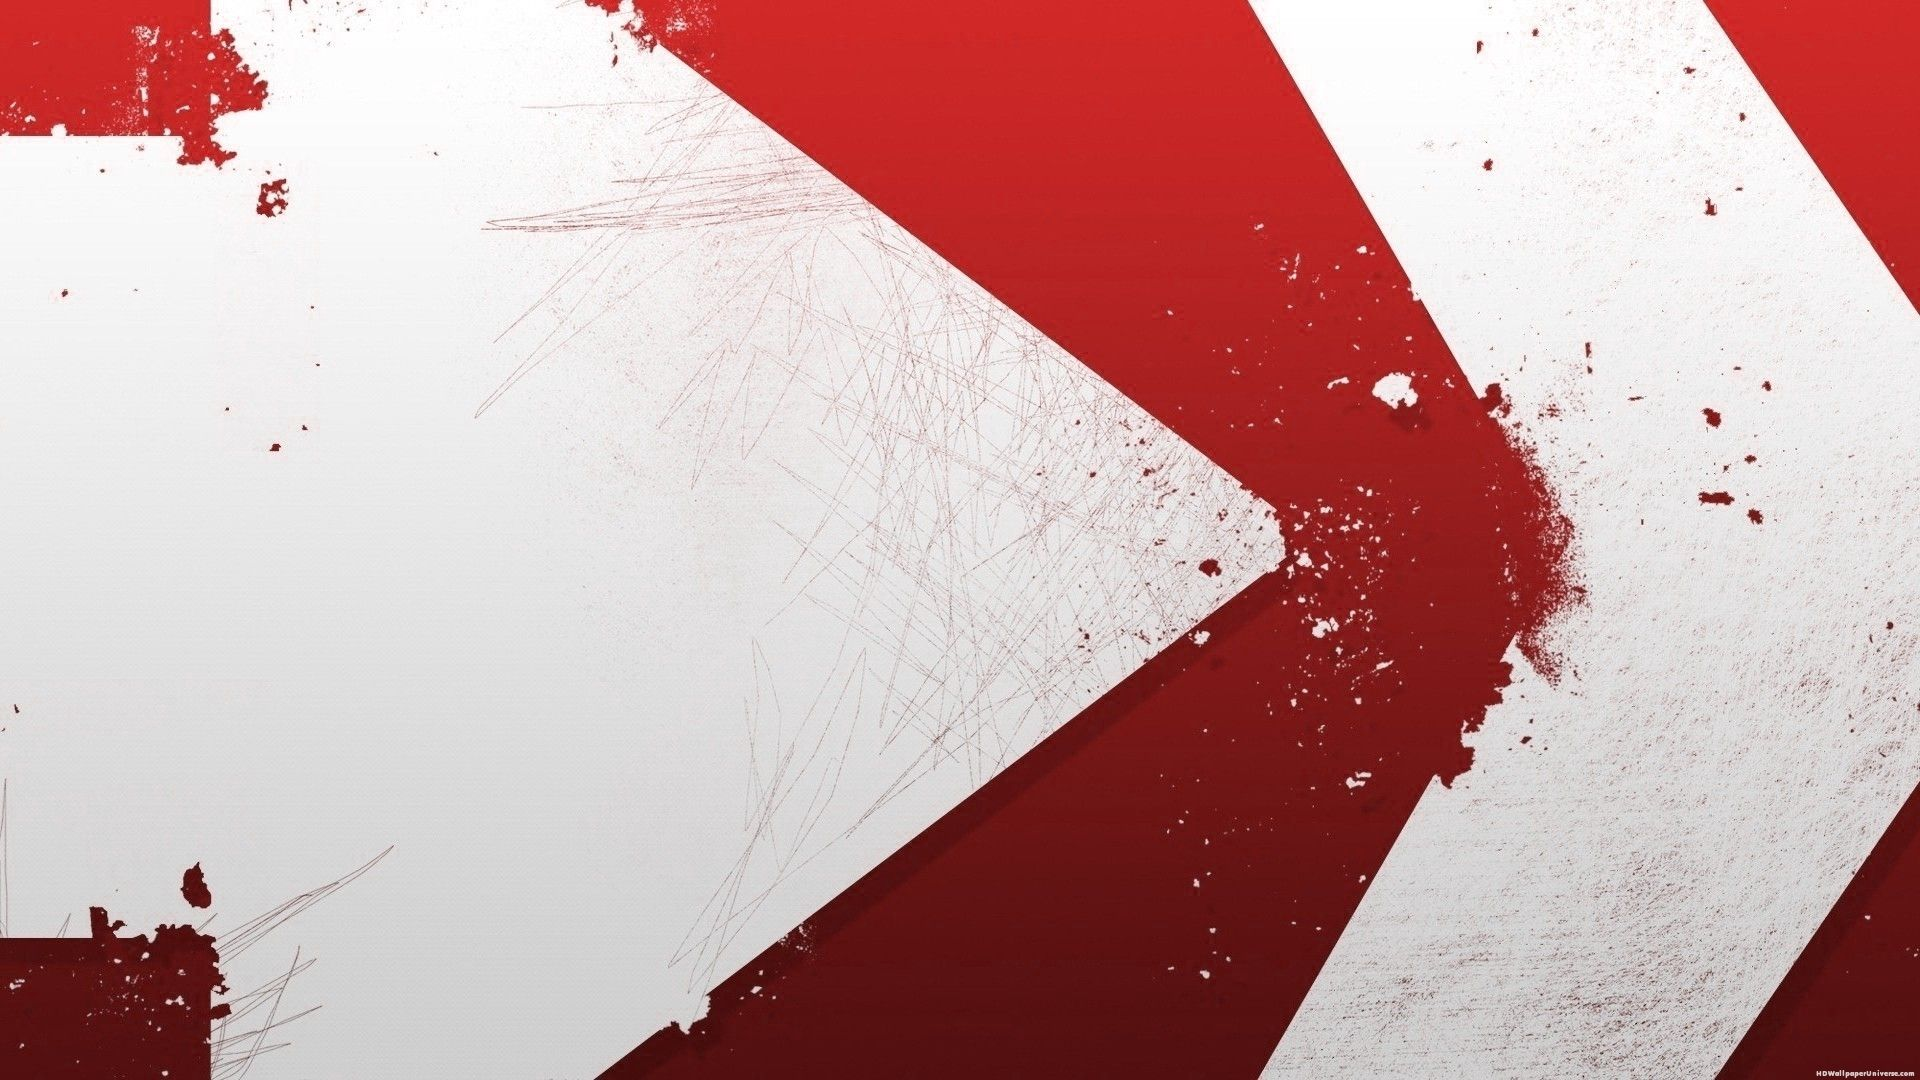 Arrows red and white abstract hd wallpaper httpwww arrows red and white abstract hd wallpaper httphdwallpaperuniverse voltagebd Choice Image